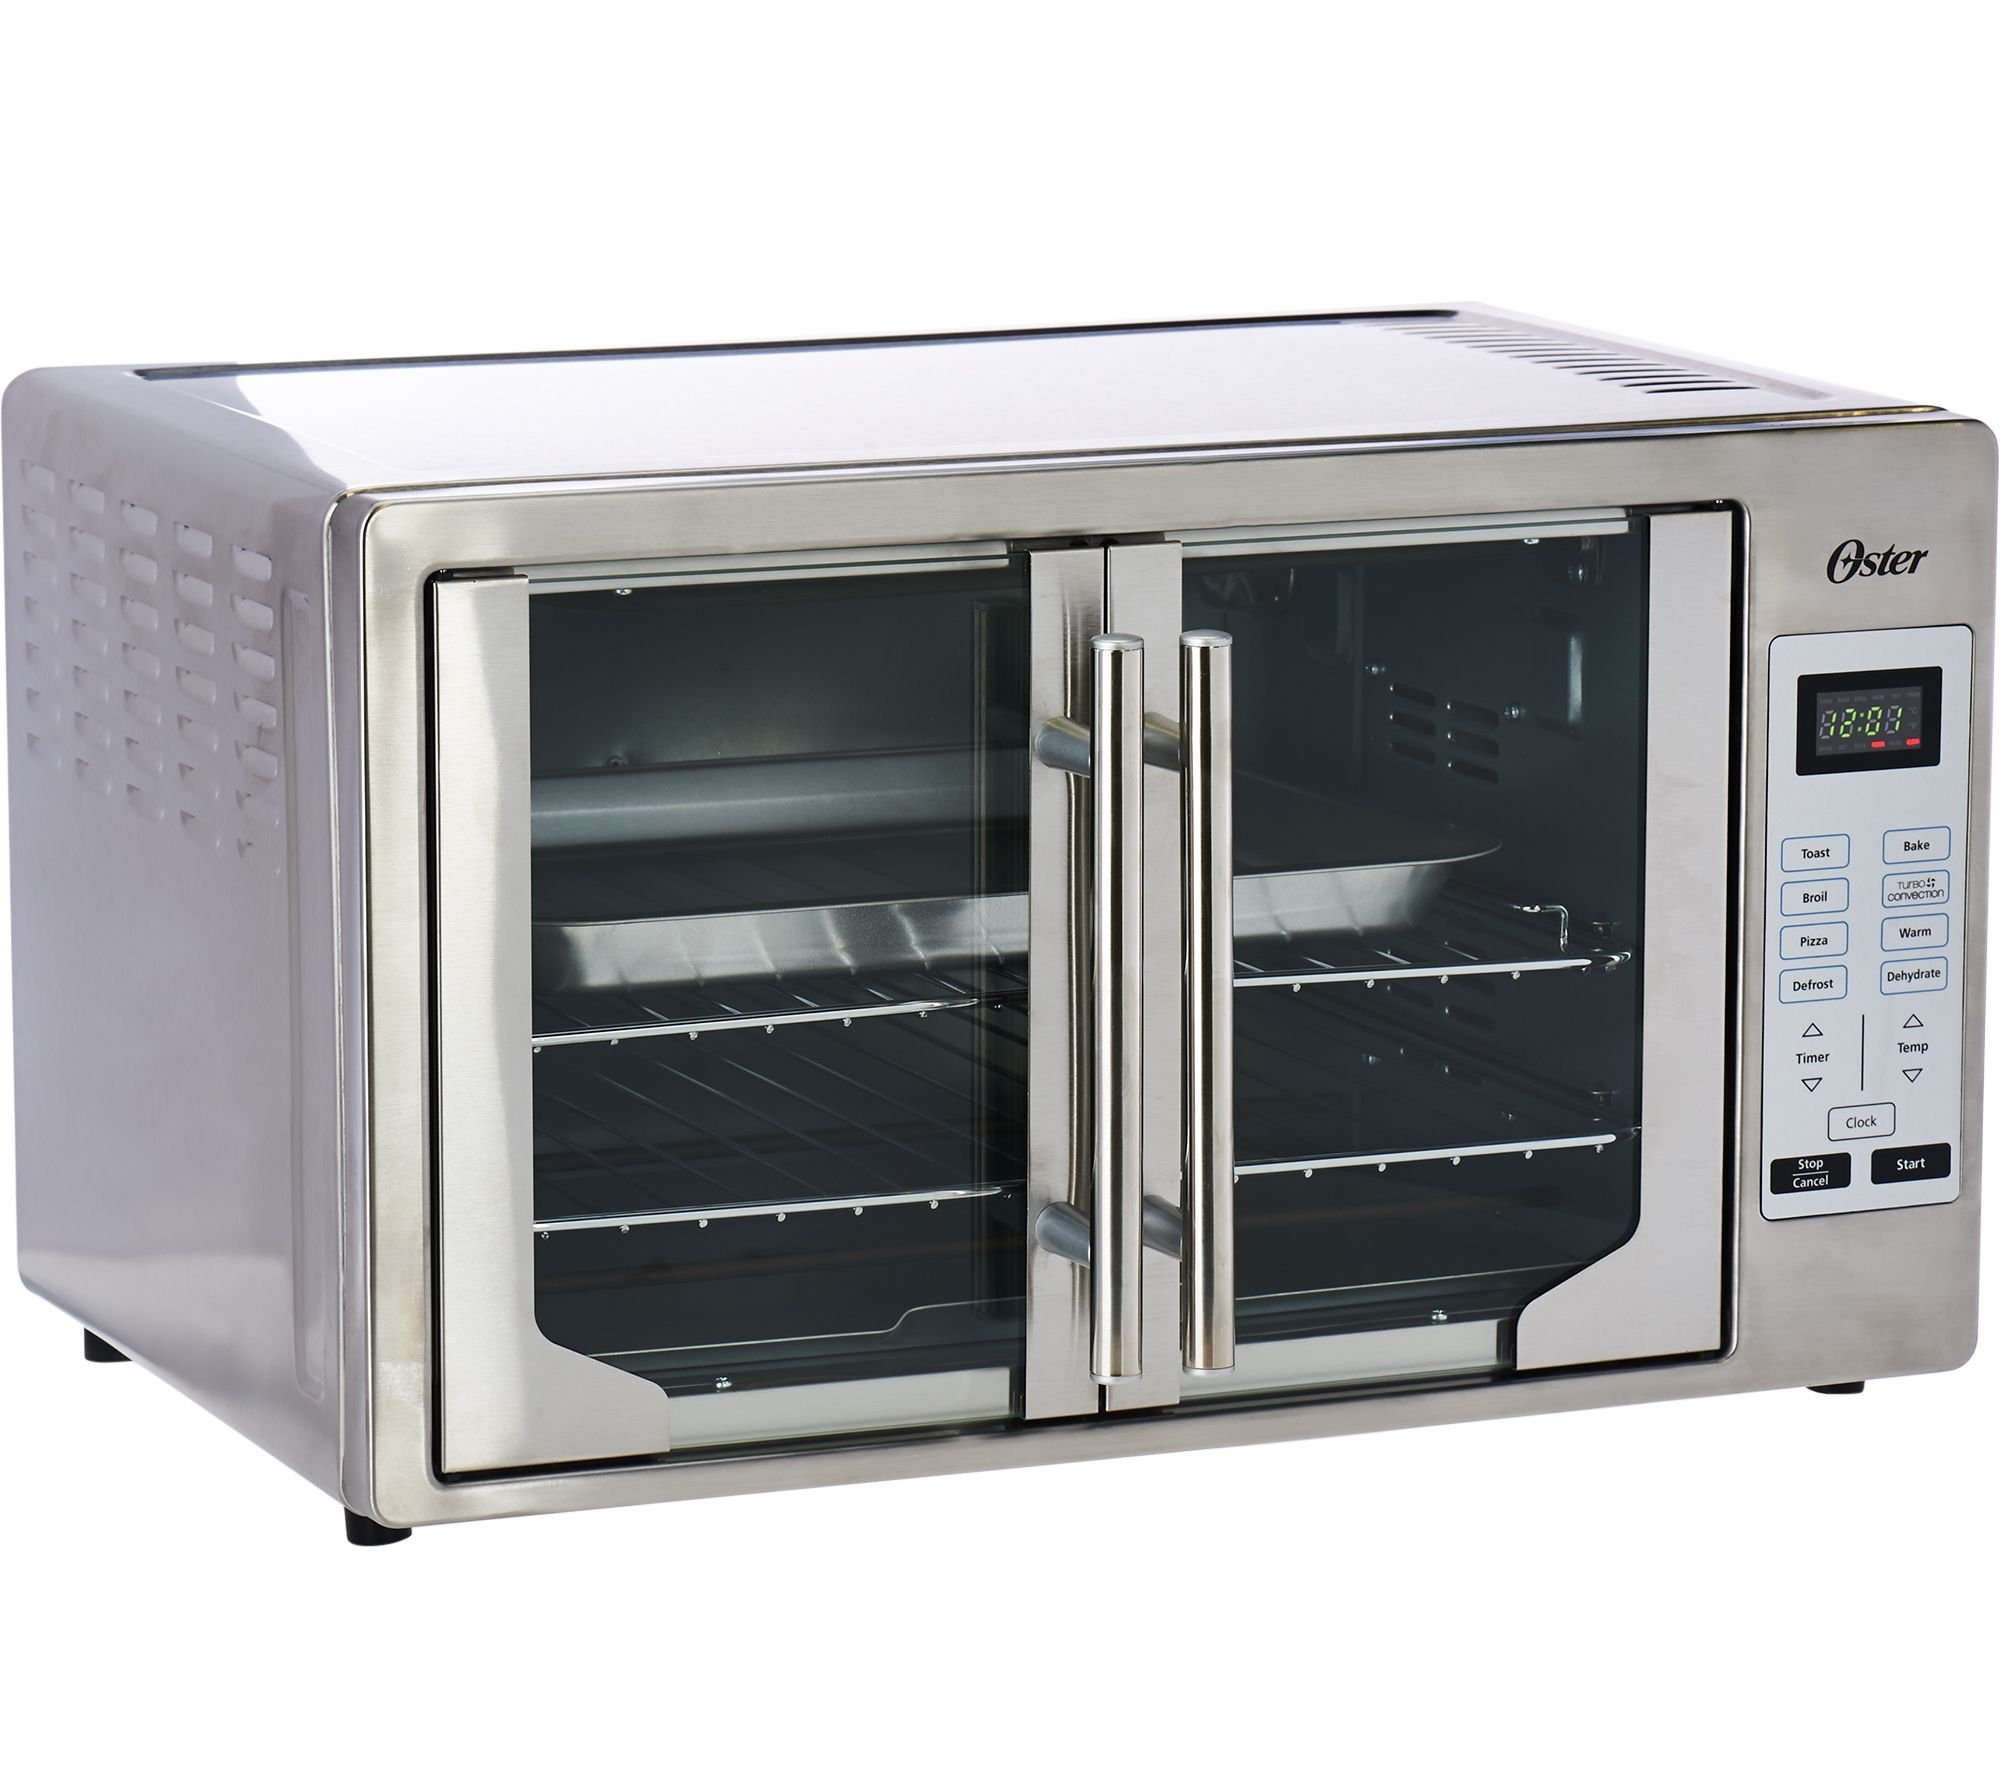 convection toaster size half largest vollrath oven cayenne countertop